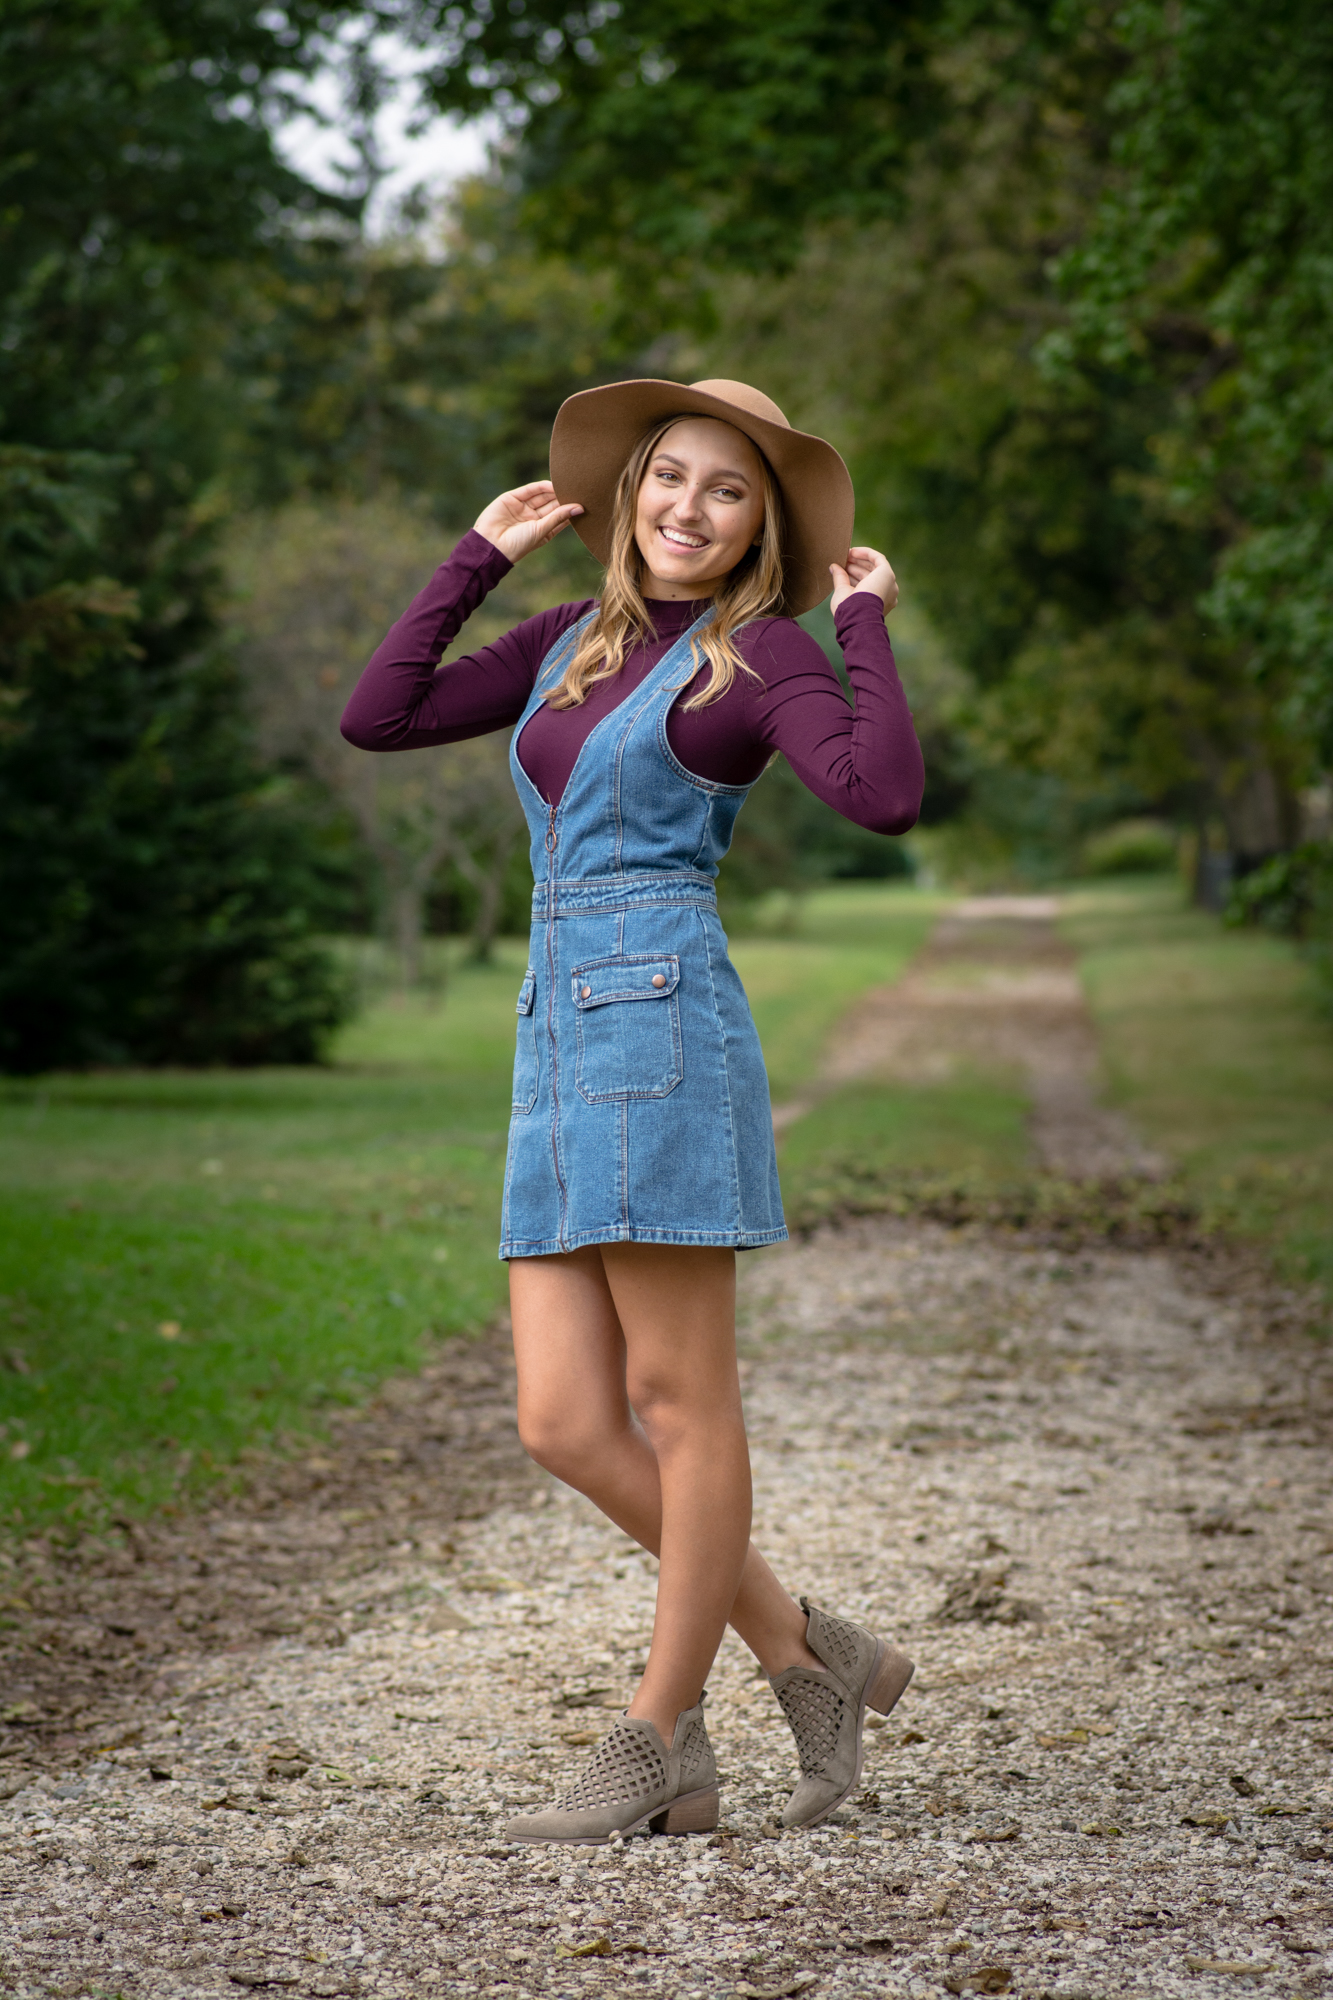 life by pictures photography_senior portraits_Olivia_columbus_20171008_5.jpg